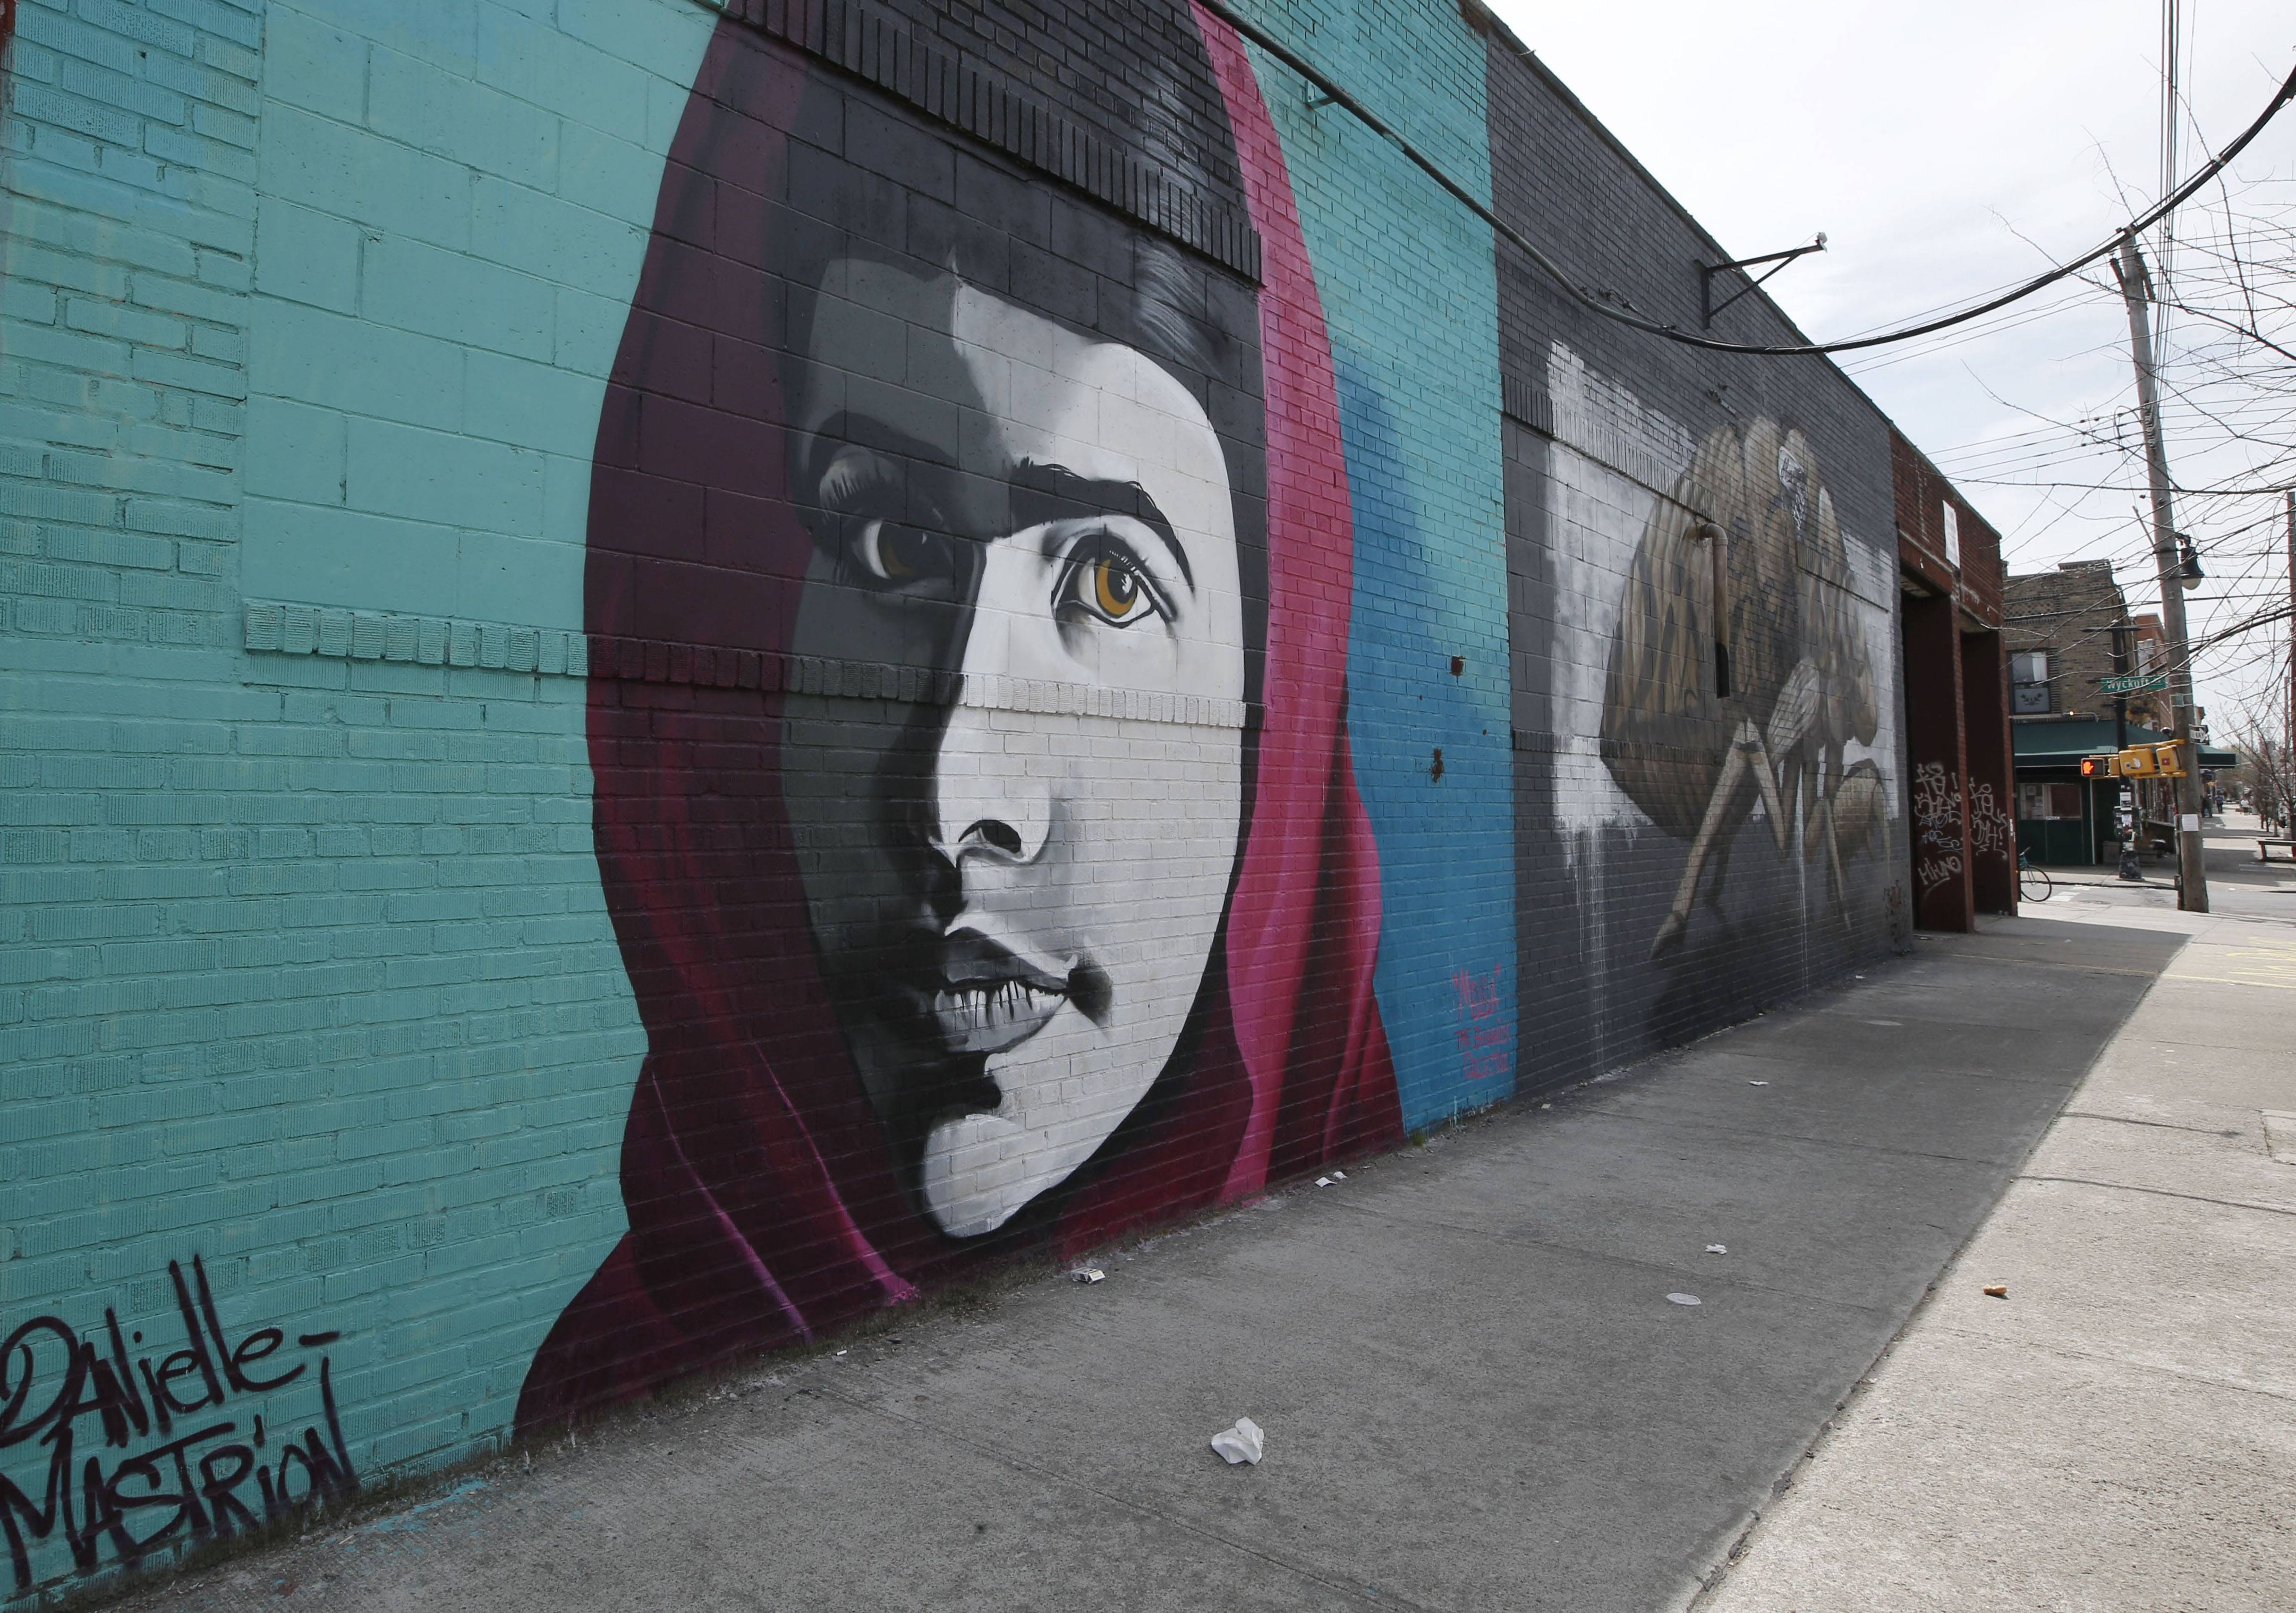 Visitors to Bushwick can see Danielle Mastrion's portrait of education activist and heroine Malala Yousafzai, the Pakistani schoolgirl who stood up to the Taliban and defended her right to an education.